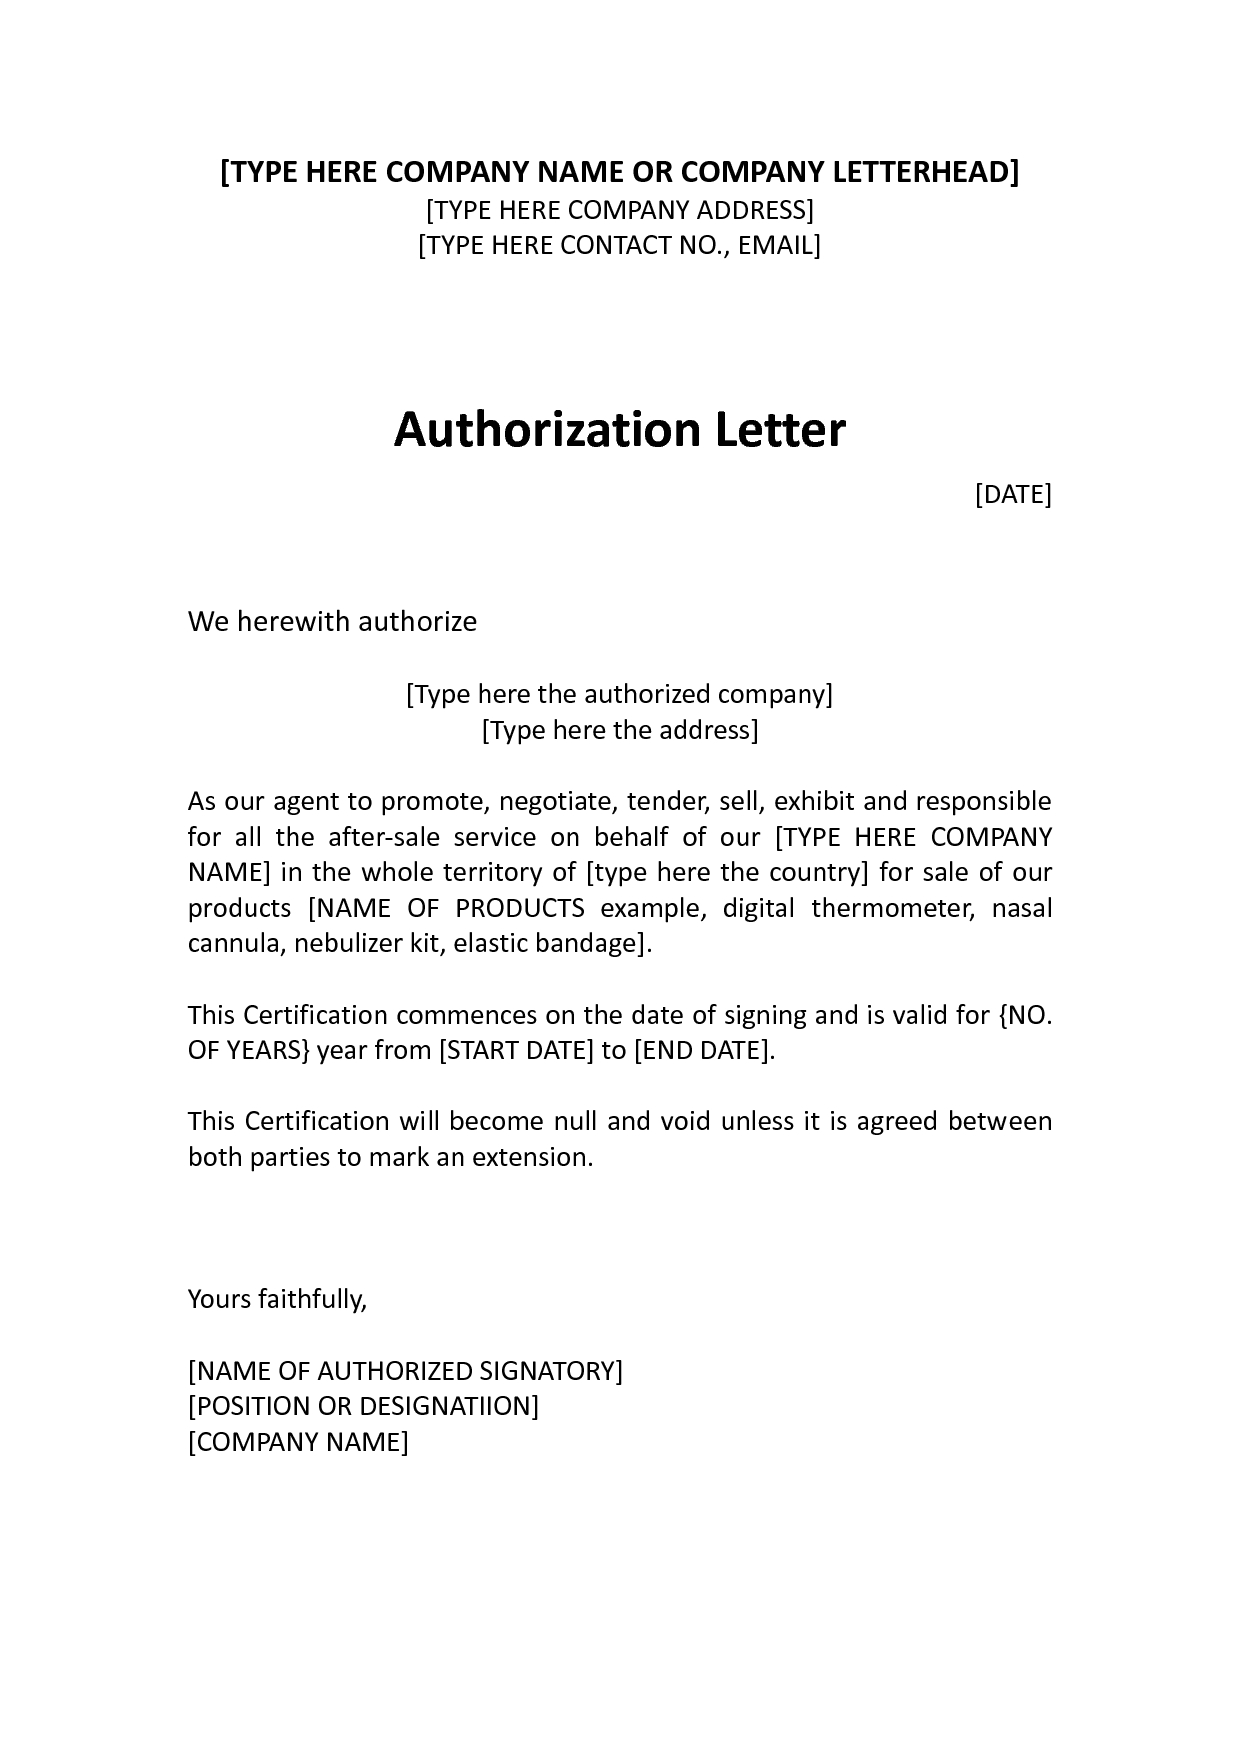 Rent Free Letter From Parents Template - Authorization Distributor Letter Sample Distributor Dealer